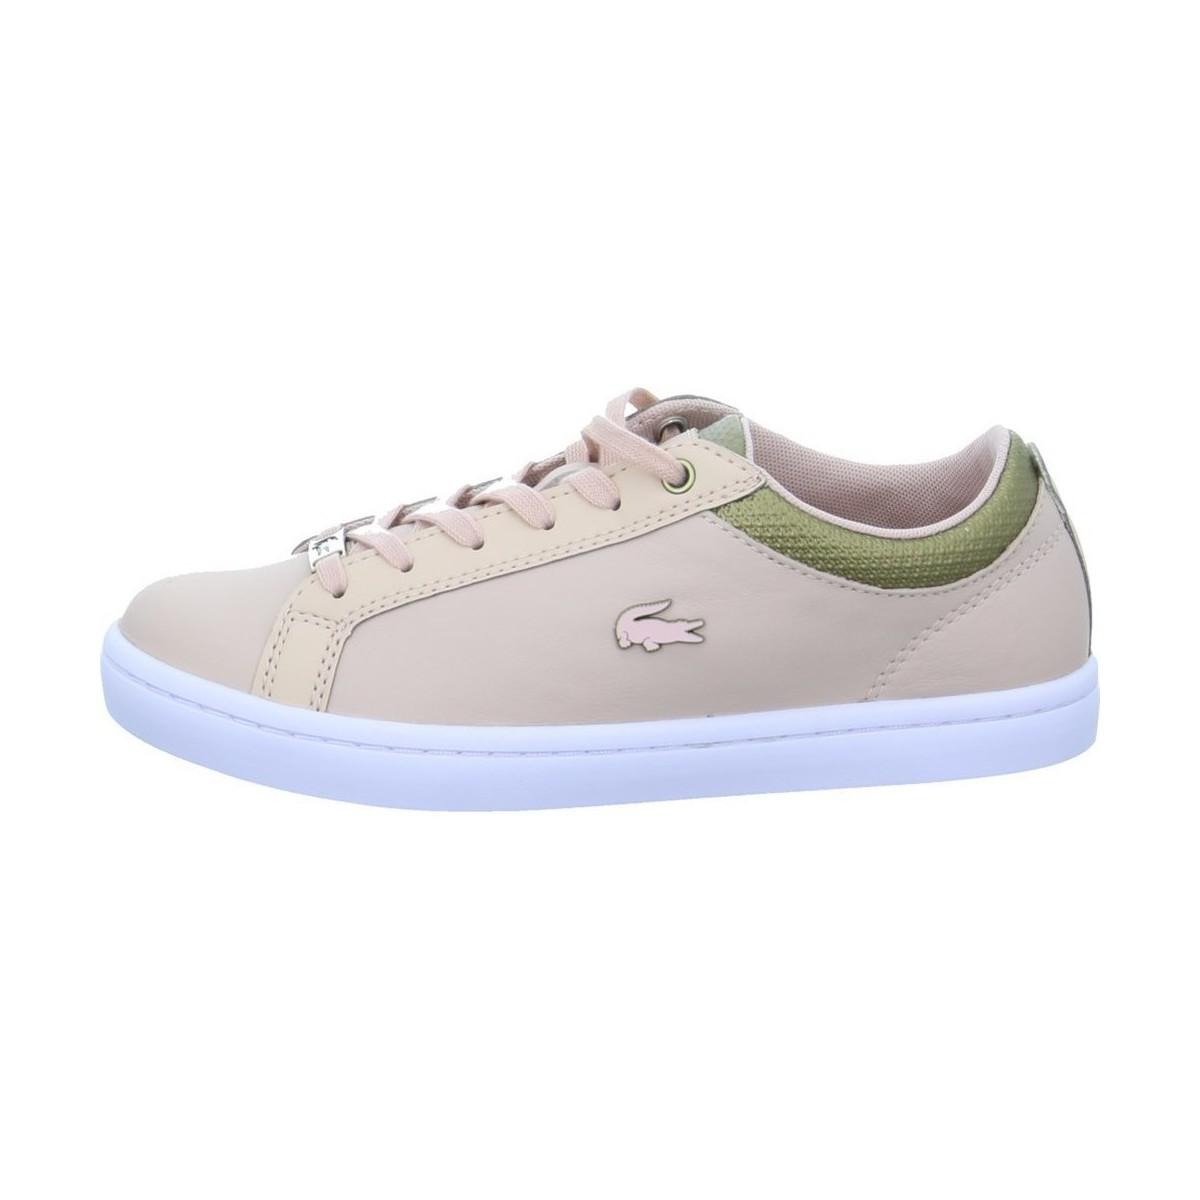 3419b9f7d Lacoste Straightset 118 Women s Shoes (trainers) In Multicolour - Lyst